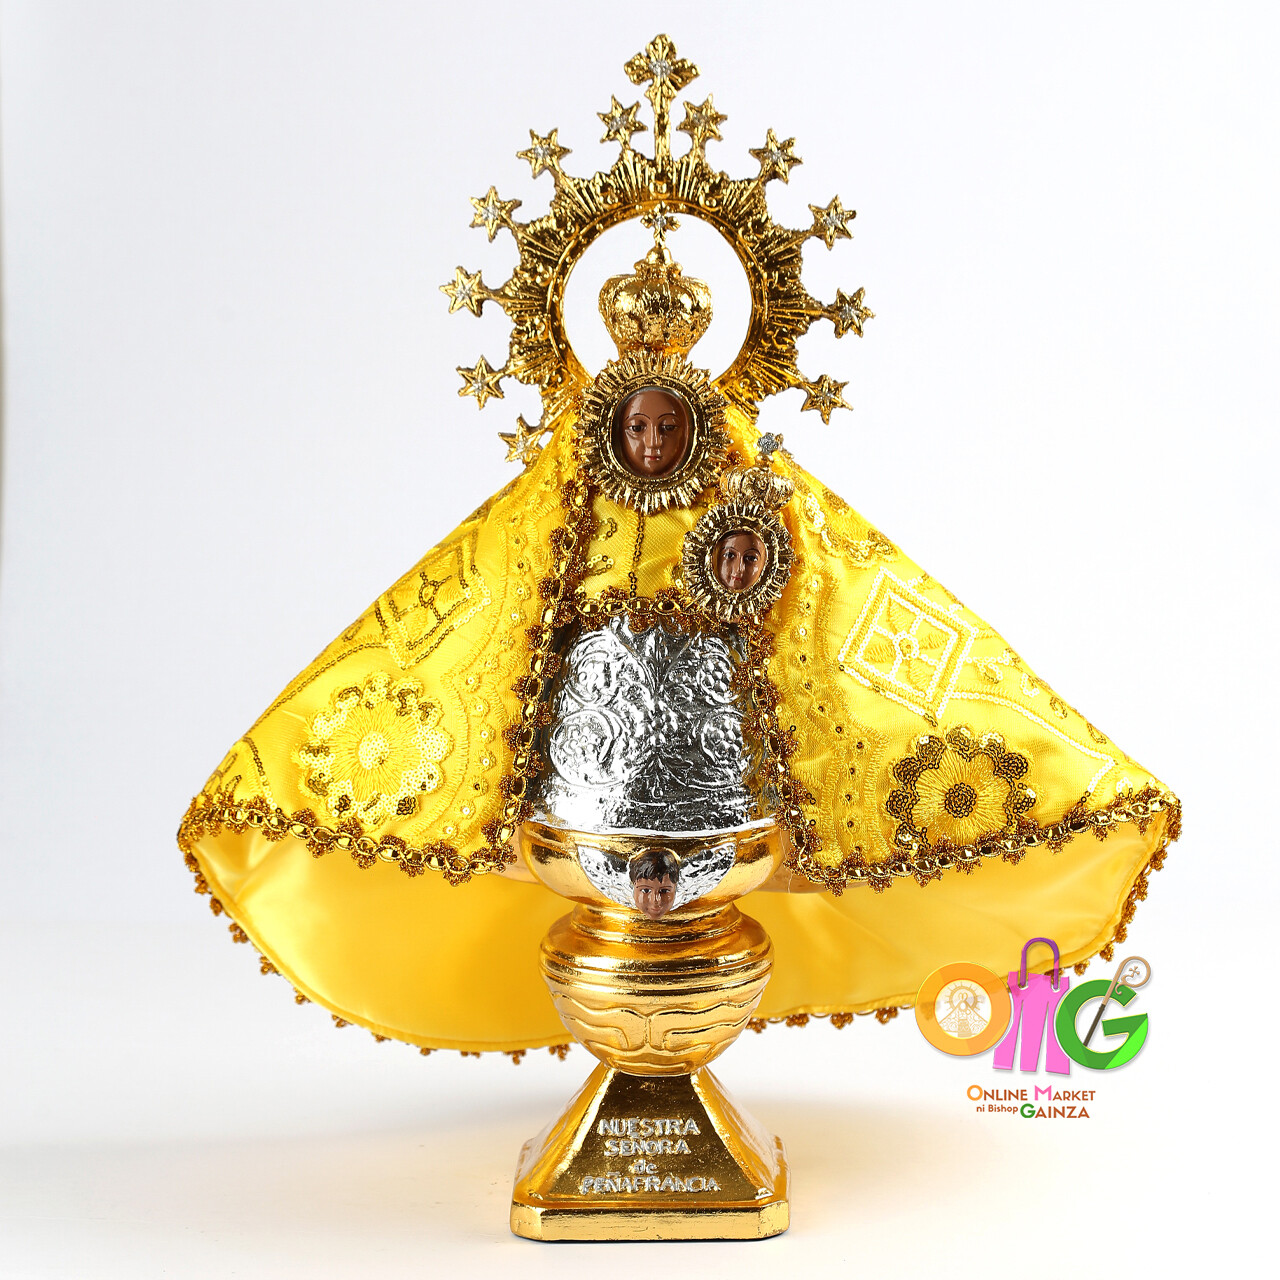 Daughters Of Mary - Our Lady of Peñafrancia with Manto Cloth